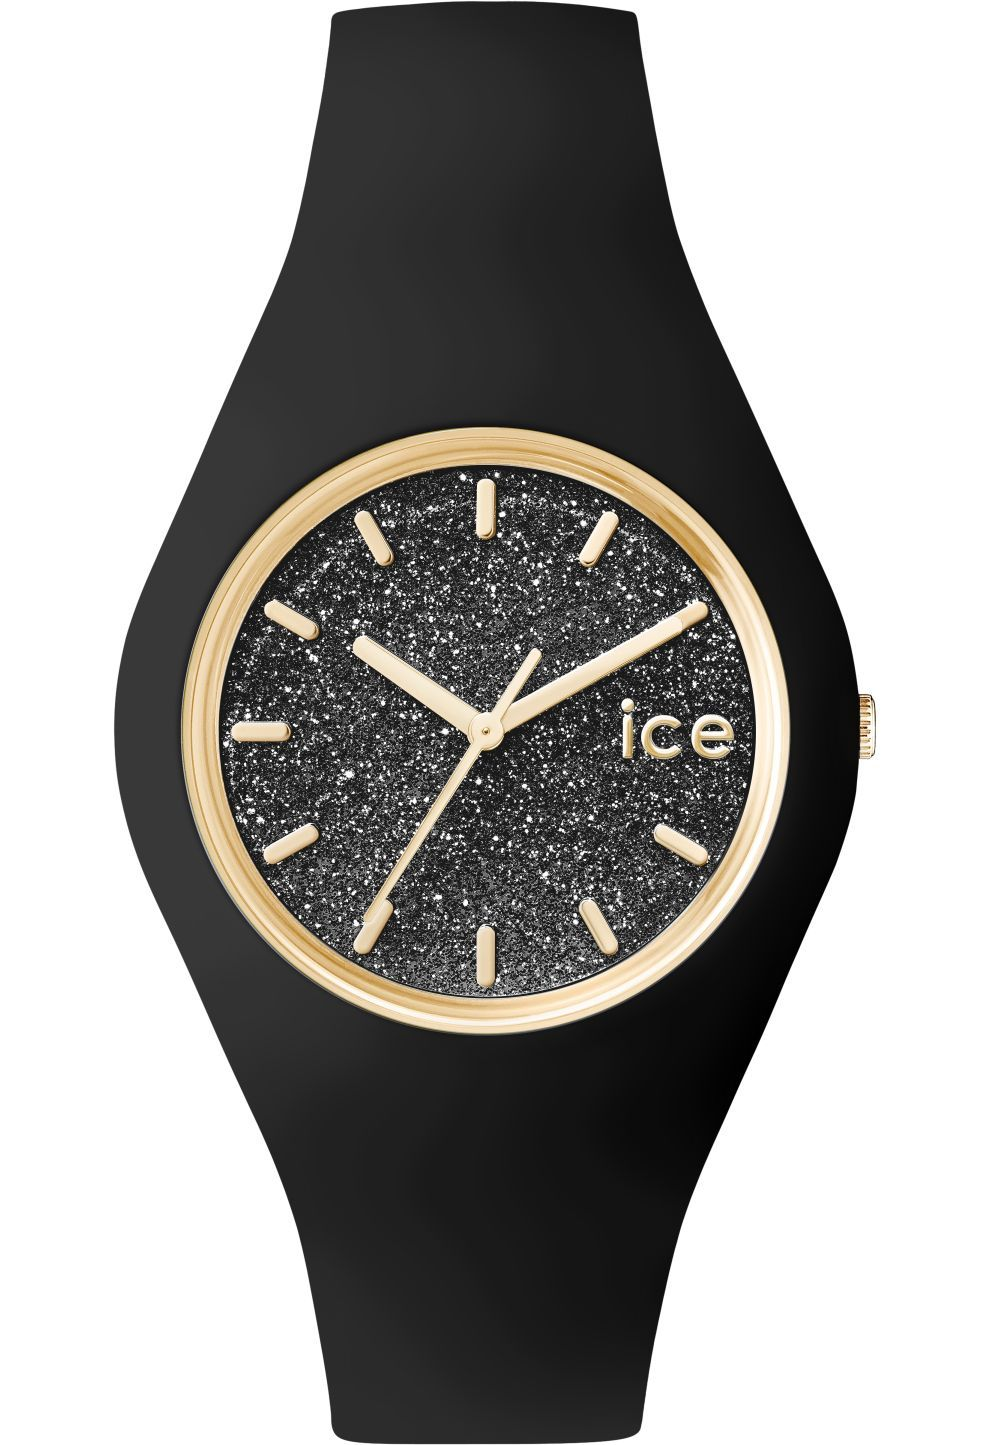 6a16afeb4fd7e Montre ICE-Glitter - Black - Unisex | Accessories | Ice watch, Watches